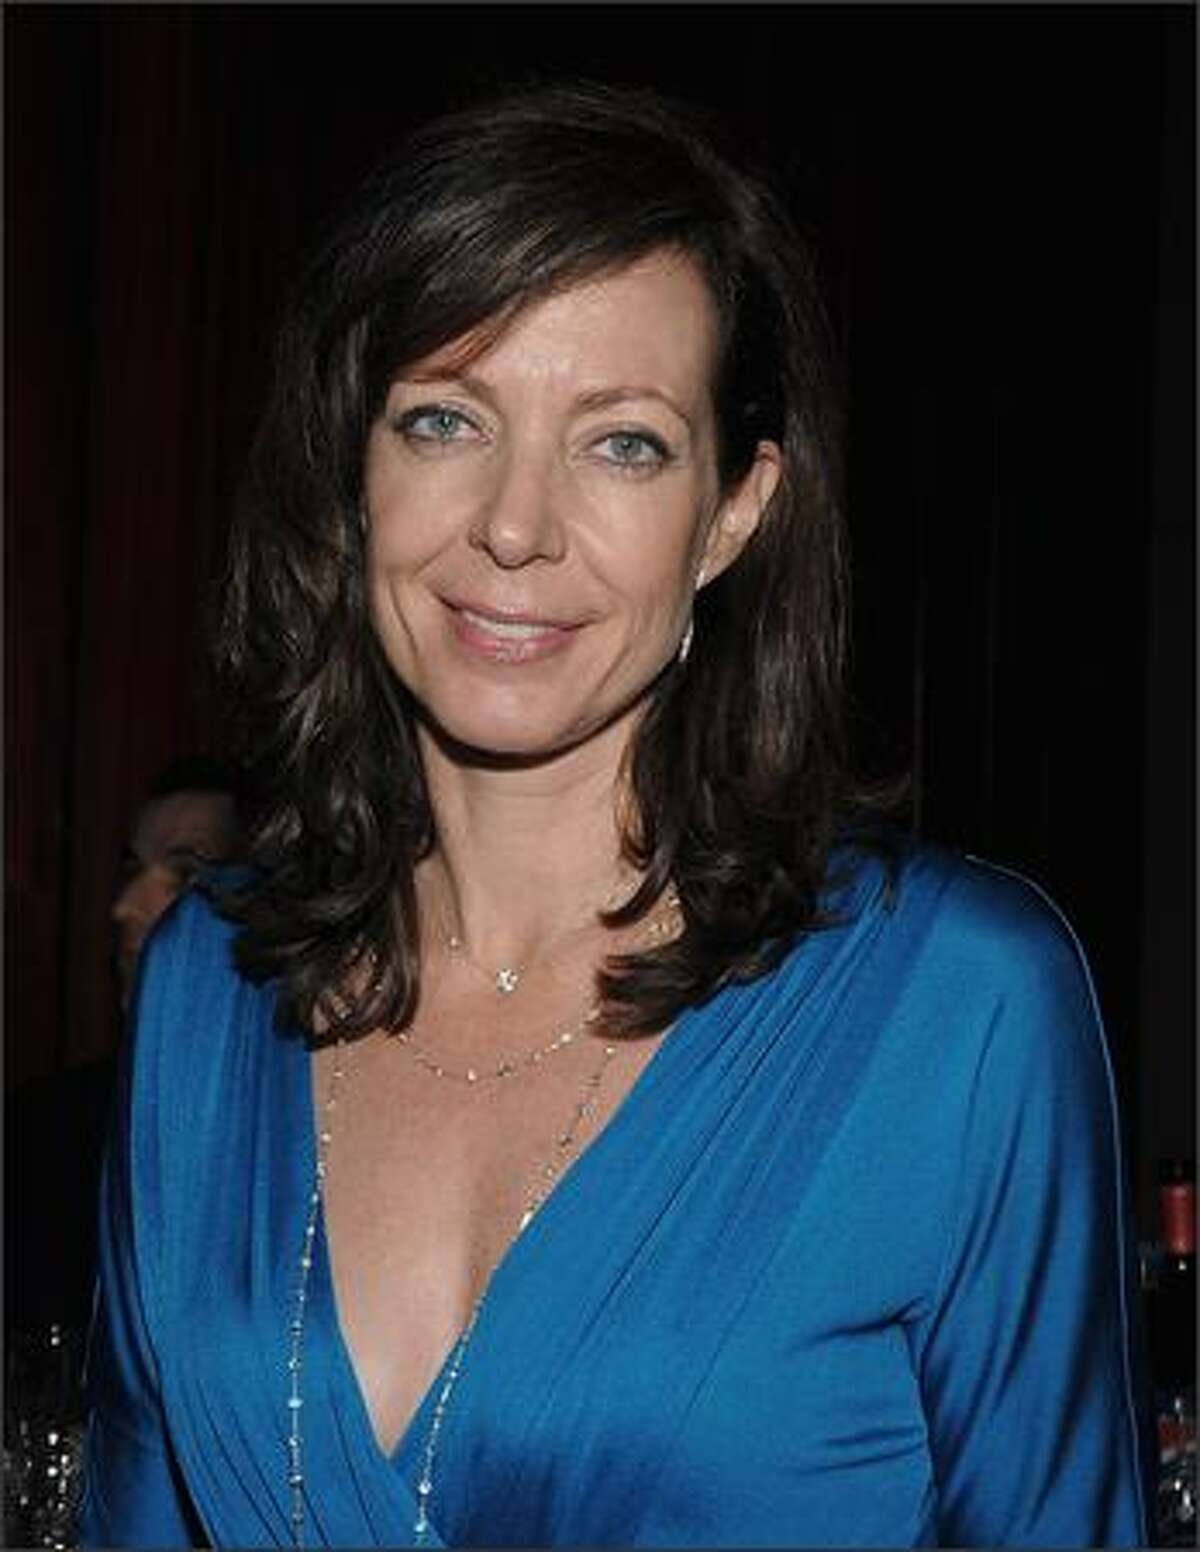 Actress Allison Janney attends the after party celebrating Paul Newman's Hole in the Wall Camps at Alice Tully Hall in New York City.